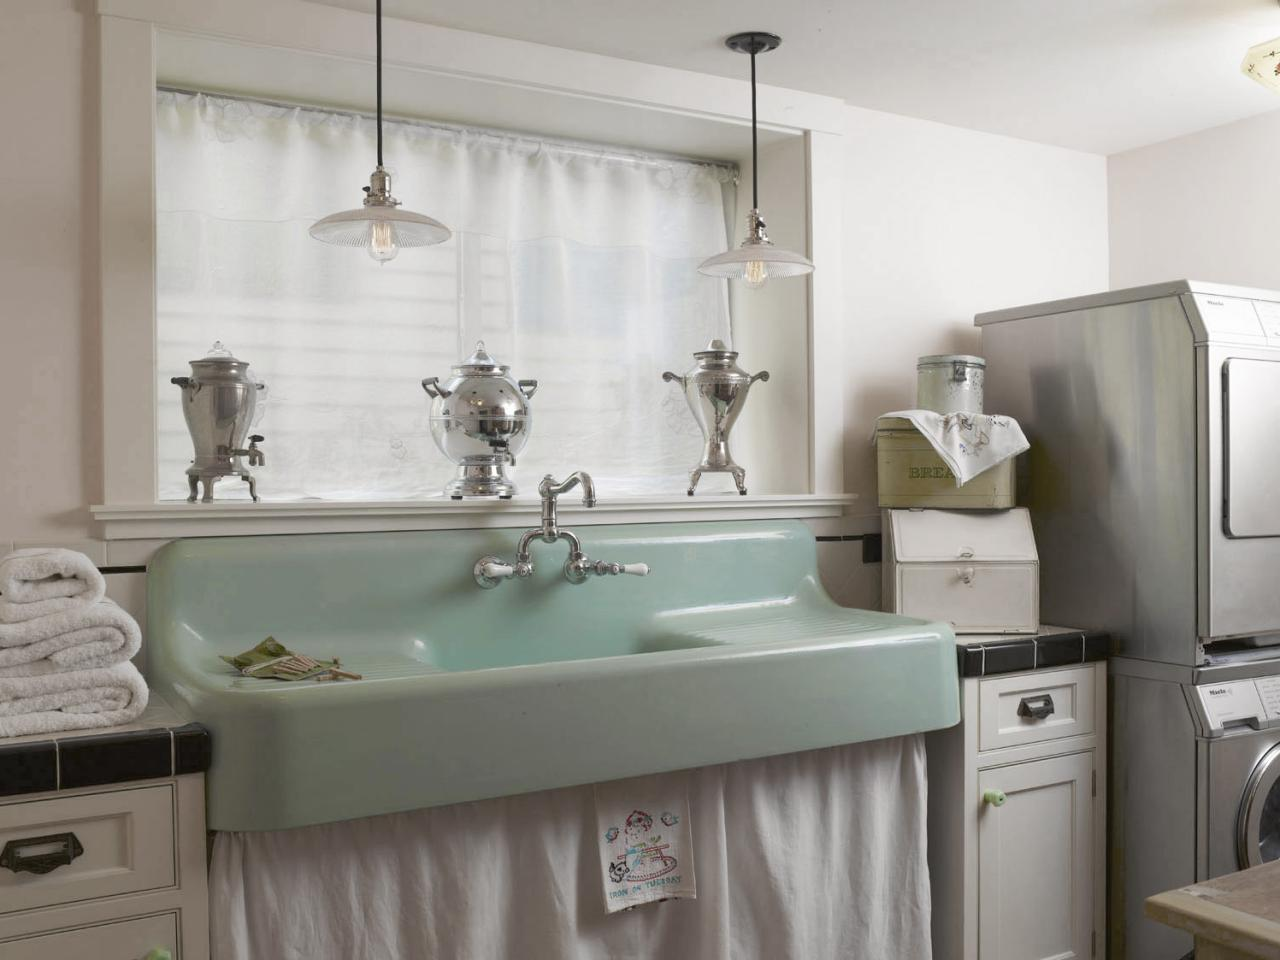 How to Choose the Perfect Laundry Room Sink - Porcelain Laundry Sink